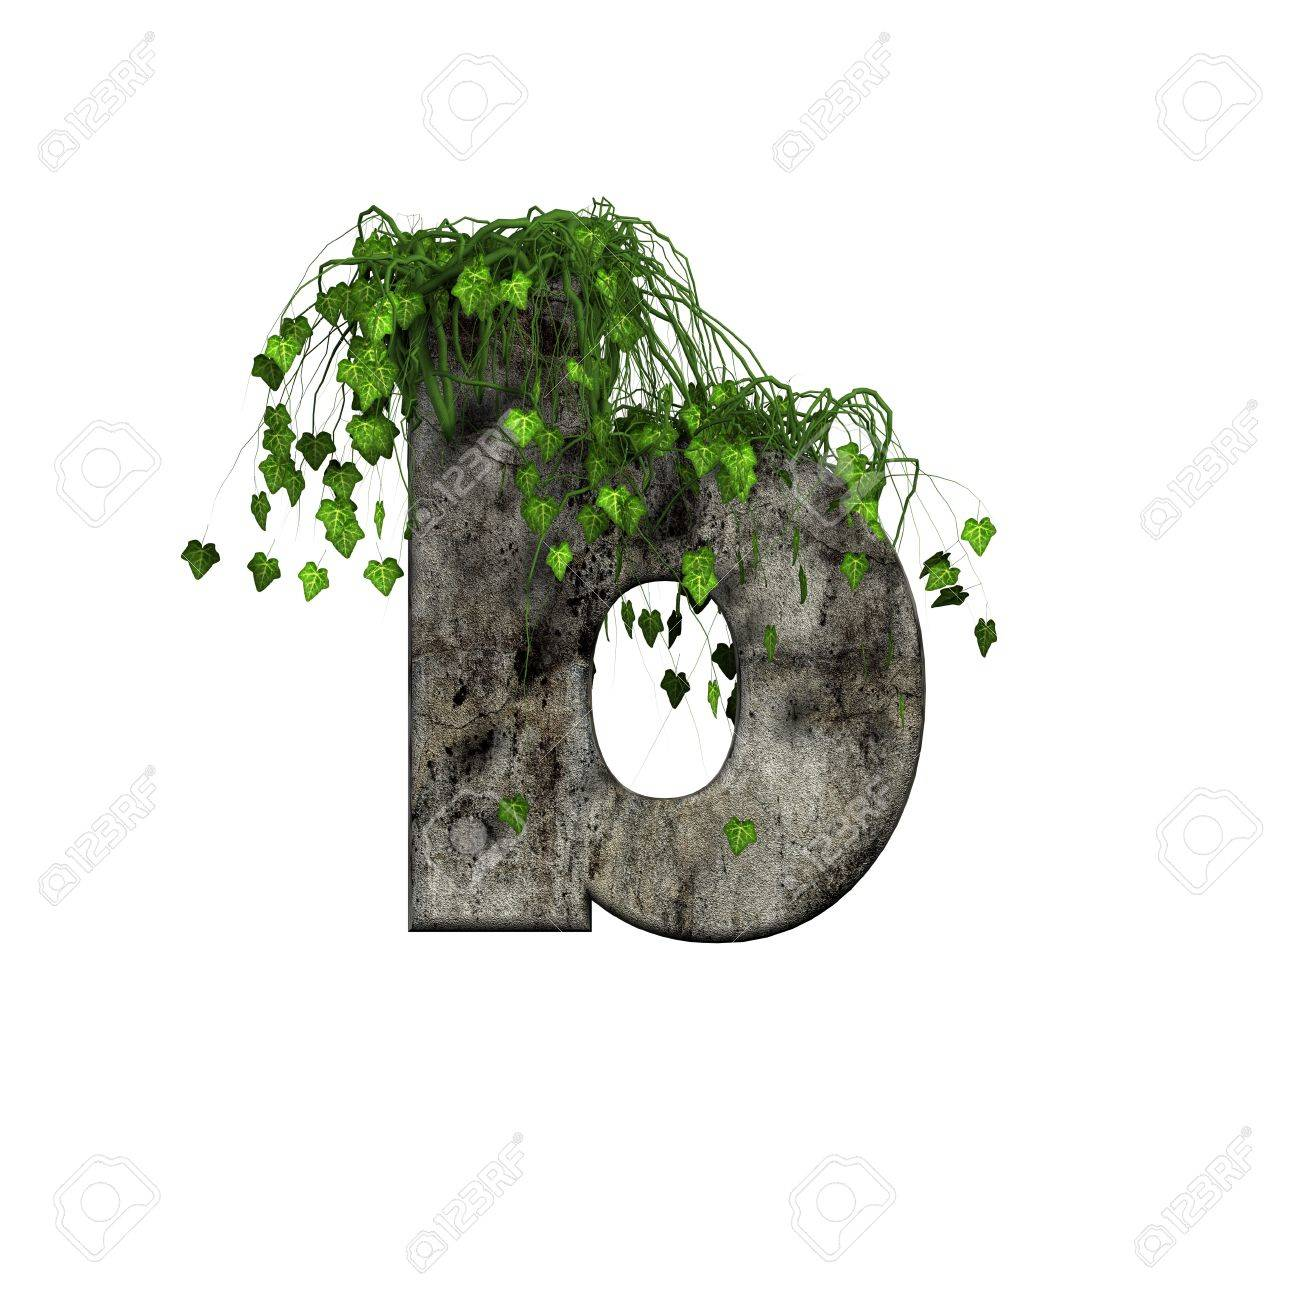 green ivy on 3d stone letter - b Stock Photo - 11994724